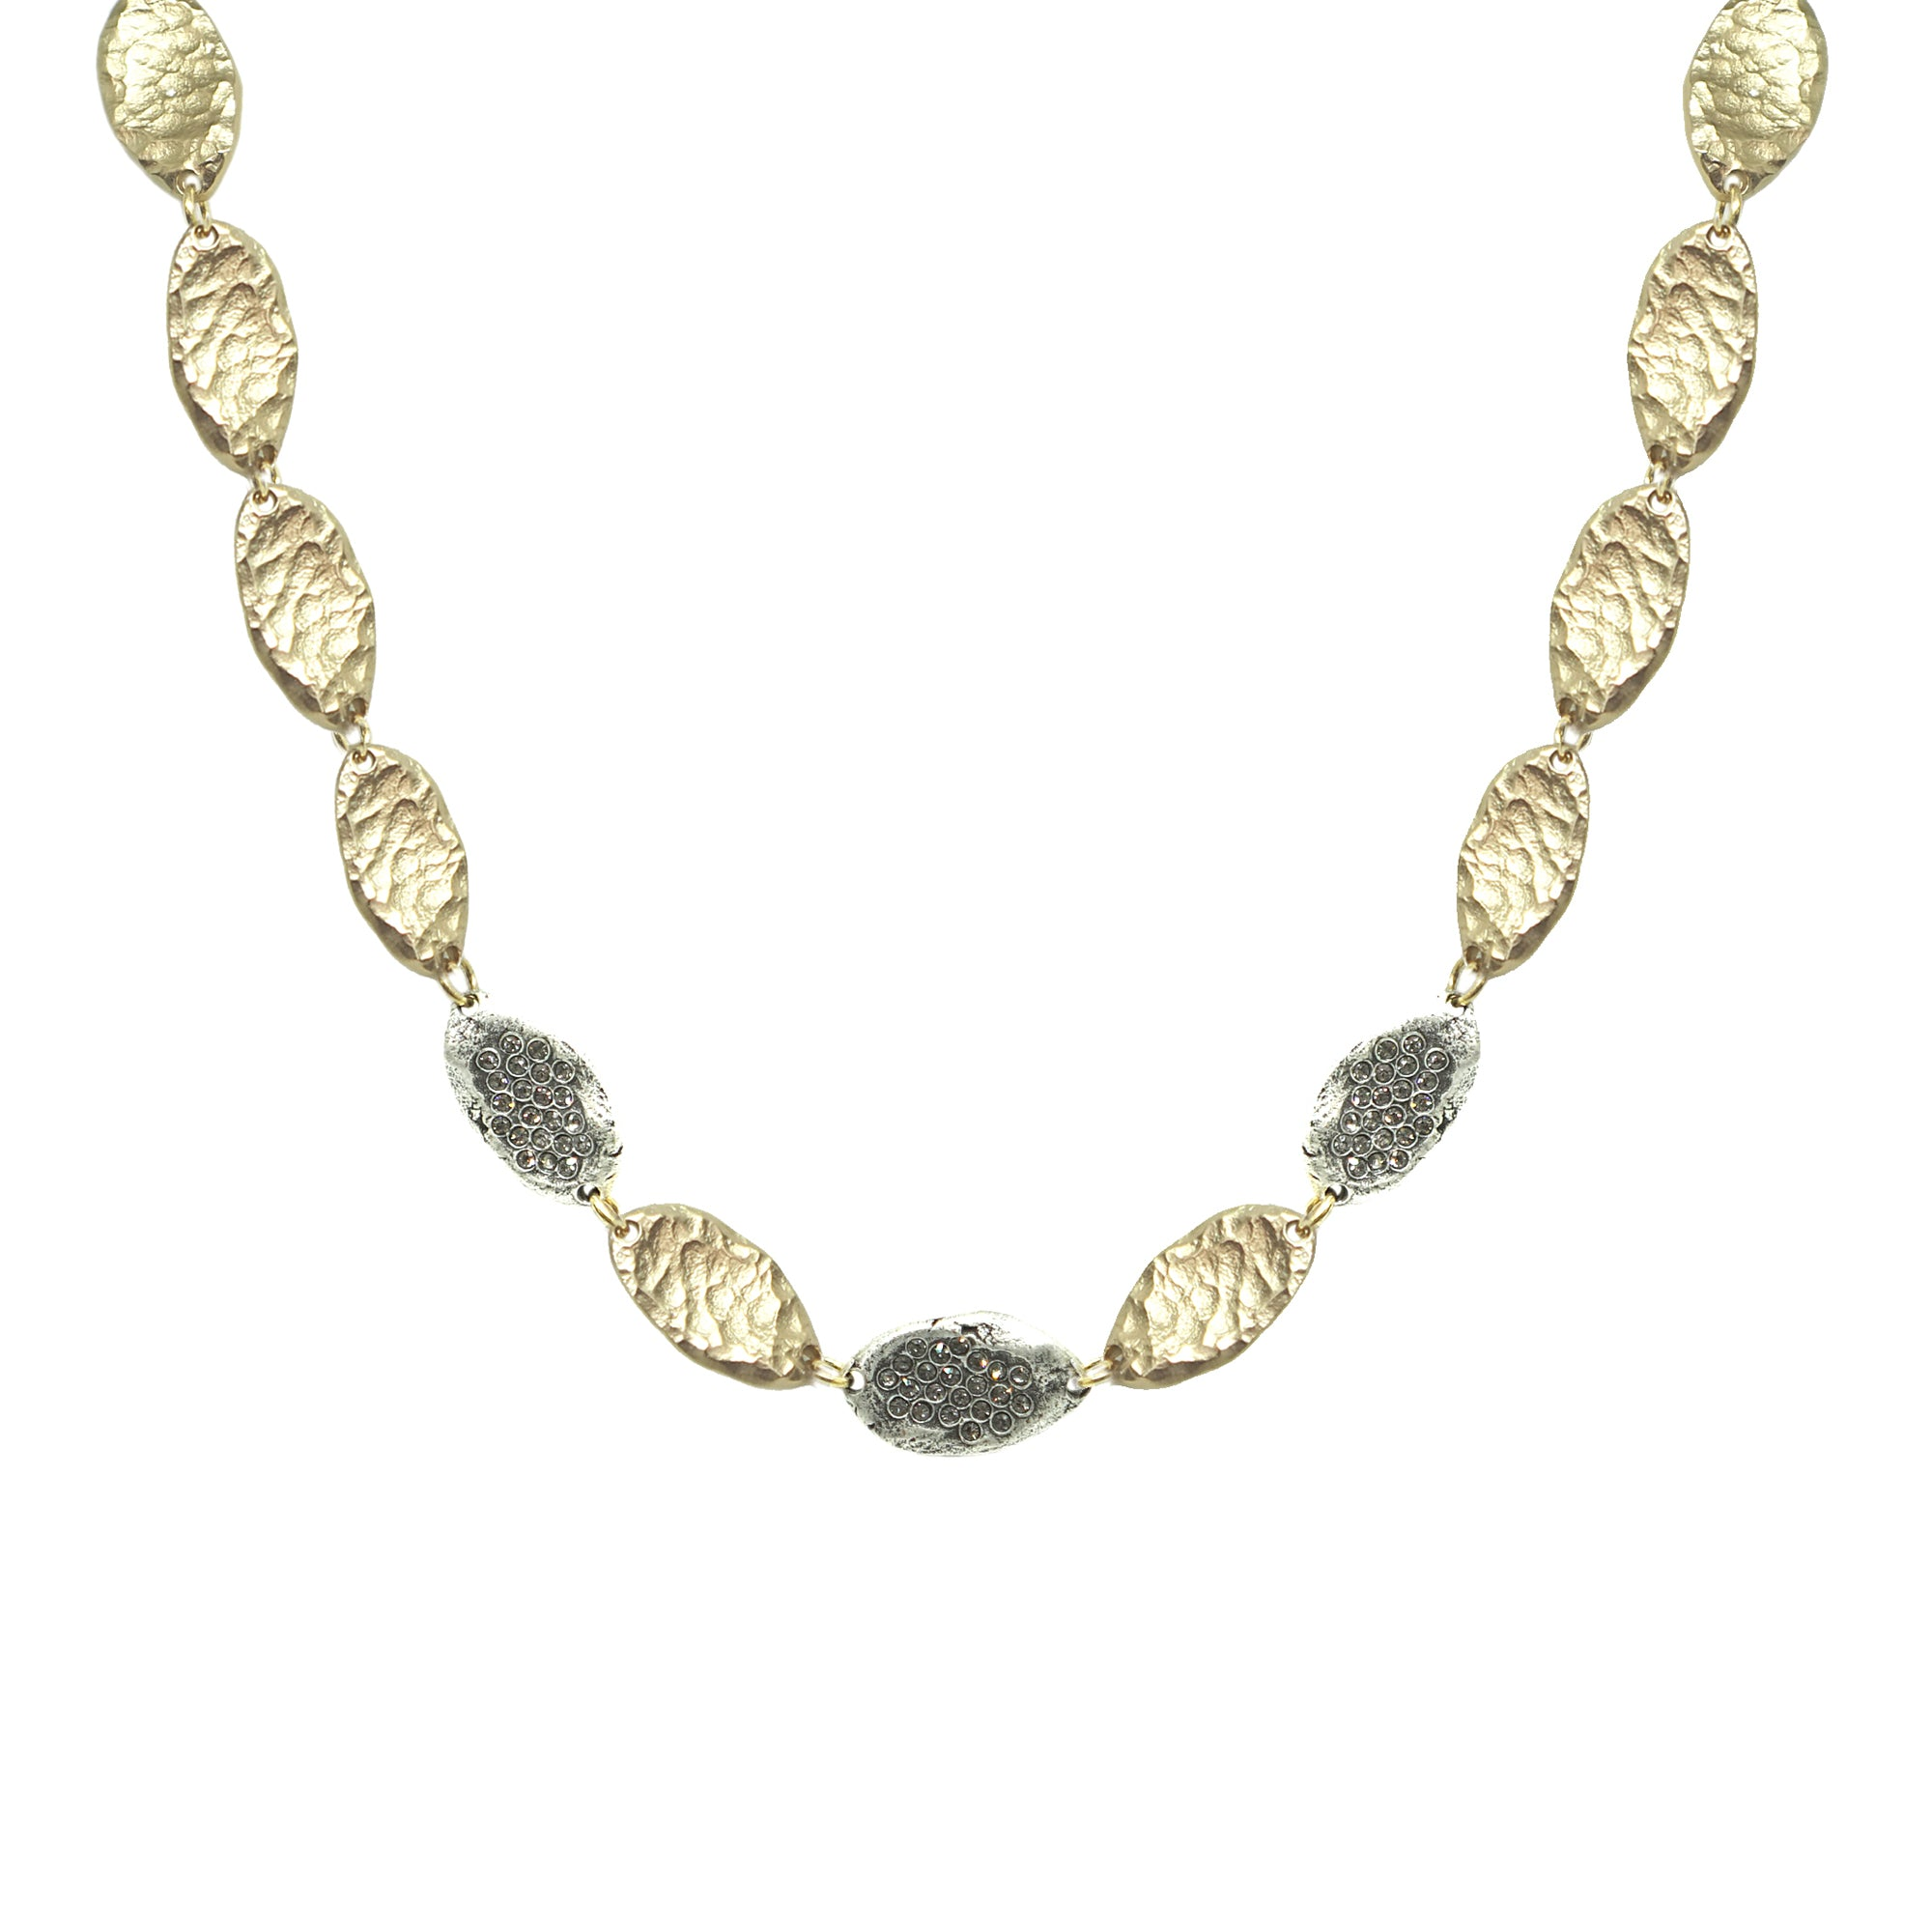 GOLD IMPRESSION LINK NECKLACE